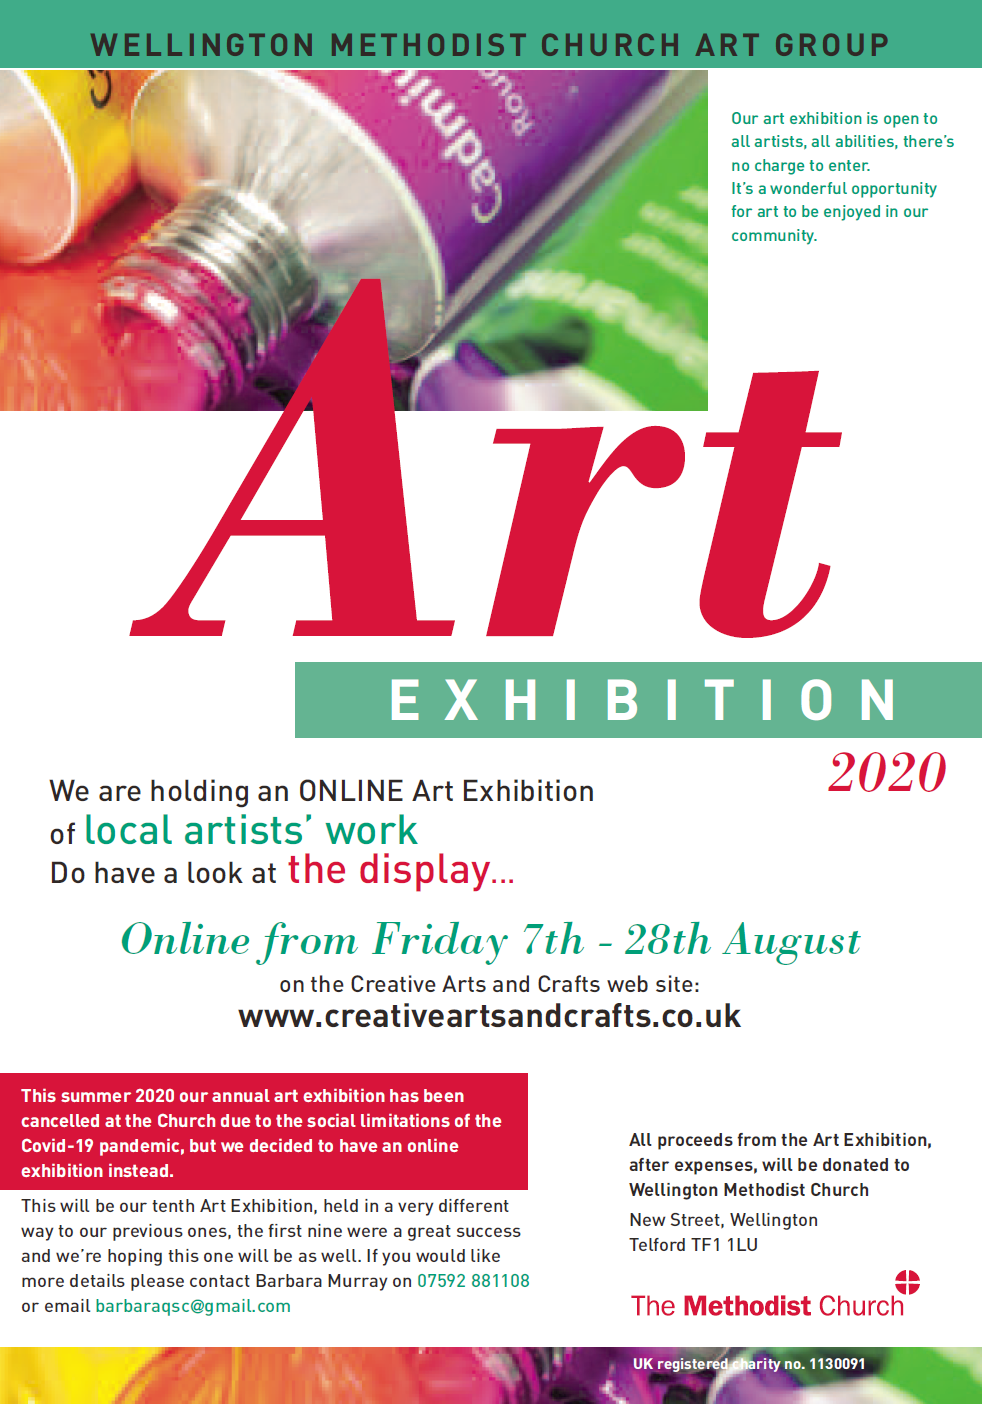 WELLINGTON METHODIST CHURCH ART GROUP  Our art exhibition is open to all artists, all abilities, there's no charge to enter. It's a wonderful opportunity for art to be enjoyed in our community.  We are holding an ONLINE Art Exhibition of local artists' work Do have a look at the display...  Online from Friday 7th - 28th August on the Creative Arts and Crafts web site: www.creativeartsandcrafts.co.uk  This summer 2020 our annual art exhibition has been cancelled at the Church due to the social limitations of the Covid-19 pandemic, but we decided to have an online exhibition instead.  This will be our tenth Art Exhibition, held in a very different way to our previous ones, the first nine were a great success and we're hoping this one will be as well. If you would like more details please contact  Barbara Murray on 07592 881108 or email barbaraqsc@gmail.com  All proceeds from the Art Exhibition, after expenses, will be donated to Wellington Methodist Church New Street, Wellington Telford TF1 1LU  UK registered charity no. 1130091